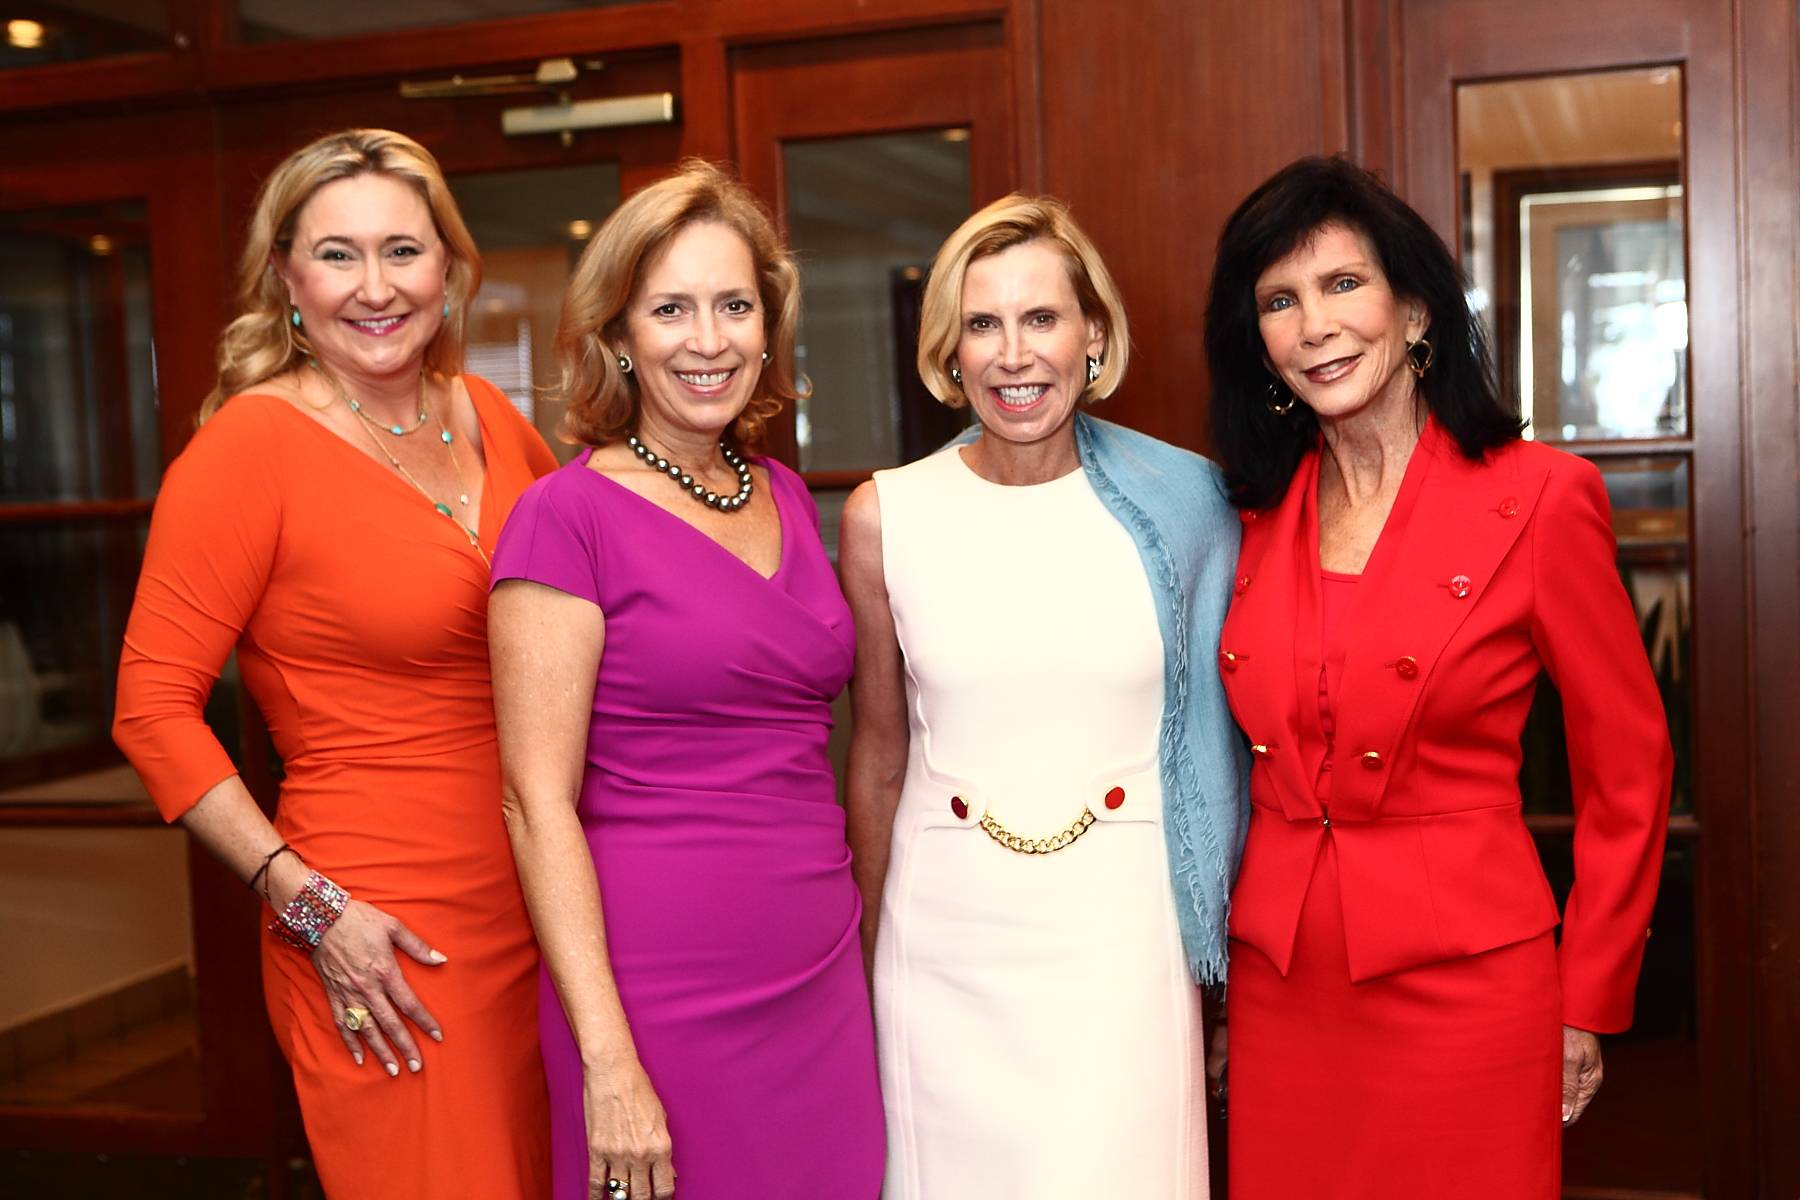 Nicole Lozano ( 2014 Gala Co-Chair), Alicia Cervera Lamadrid ( 2014 Host Chair), Nancy Batchelor (2014 Gala Co-Chair and Honorary Chair), Trish Bell ( Philanthropic Chair and Museum Board Co-Chair)